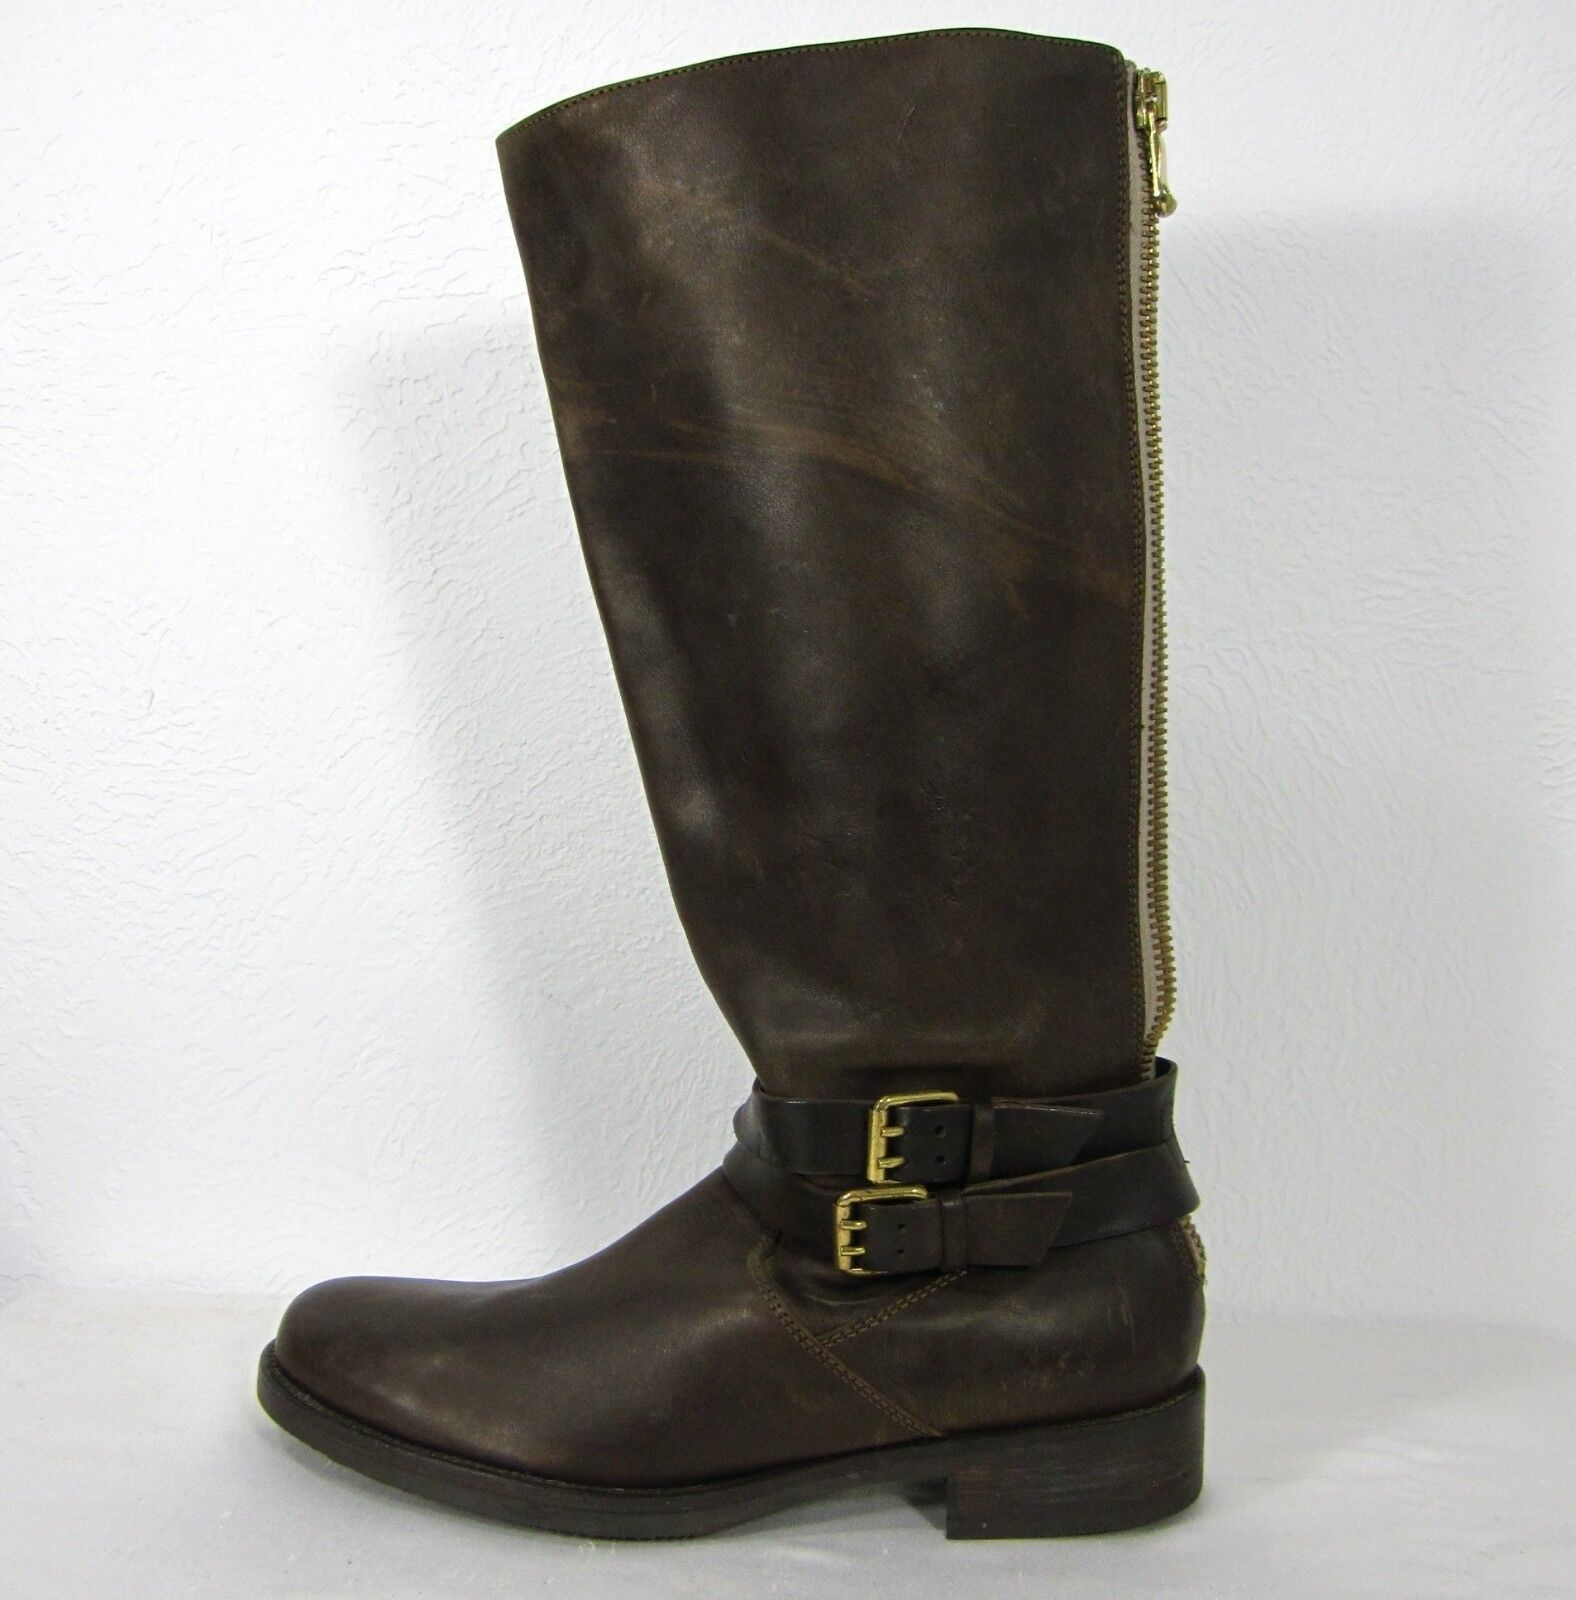 J. CREW KNEE LENGTH BACK ZIPPER RIDER BOOTS SIZE 9.5(US) BROWN